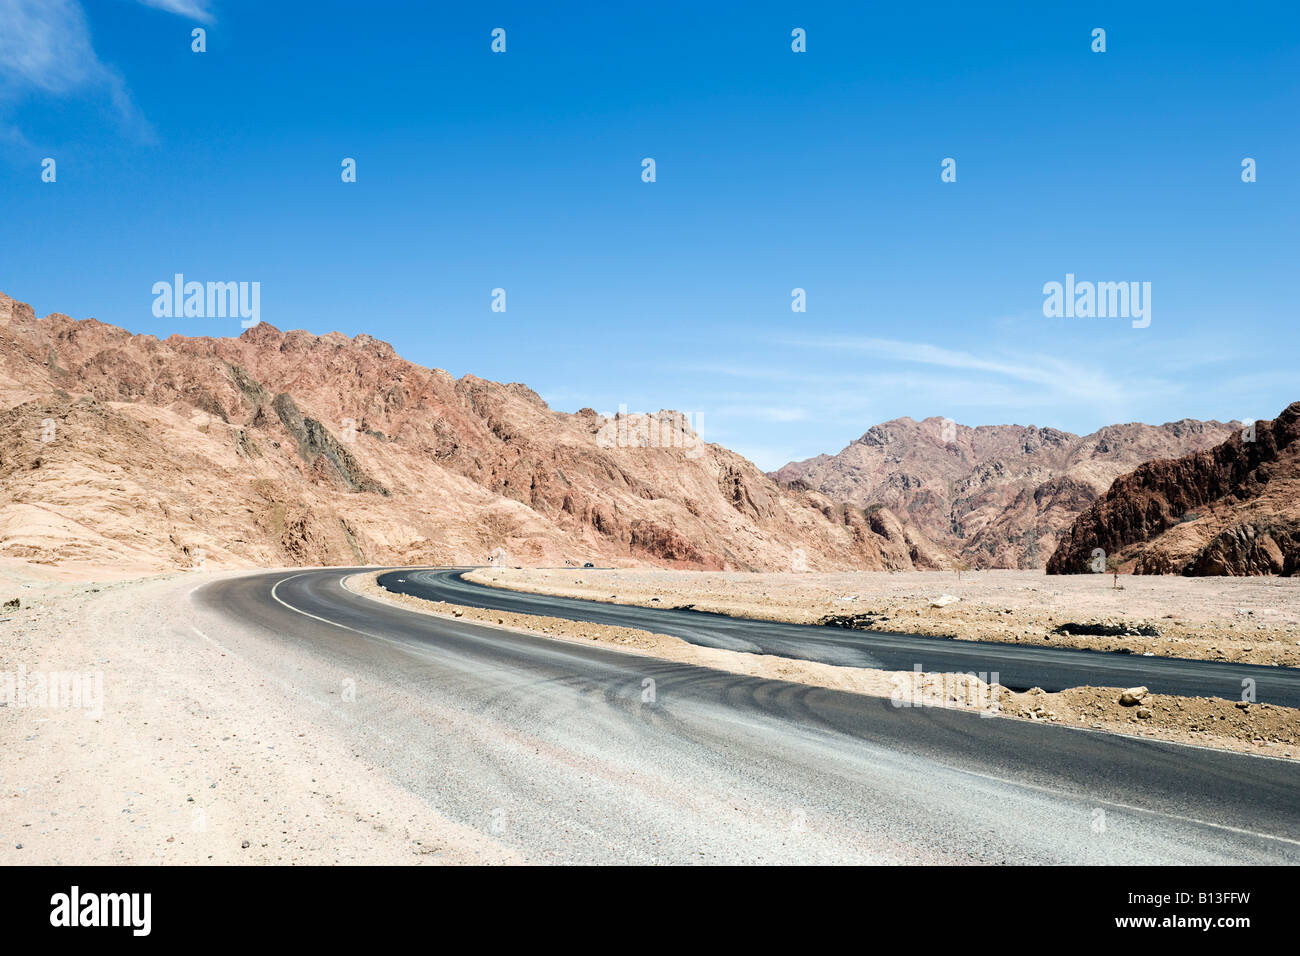 Main Road between Dahab and Sharm el-Sheikh, South Sinai Desert, Egypt - Stock Image